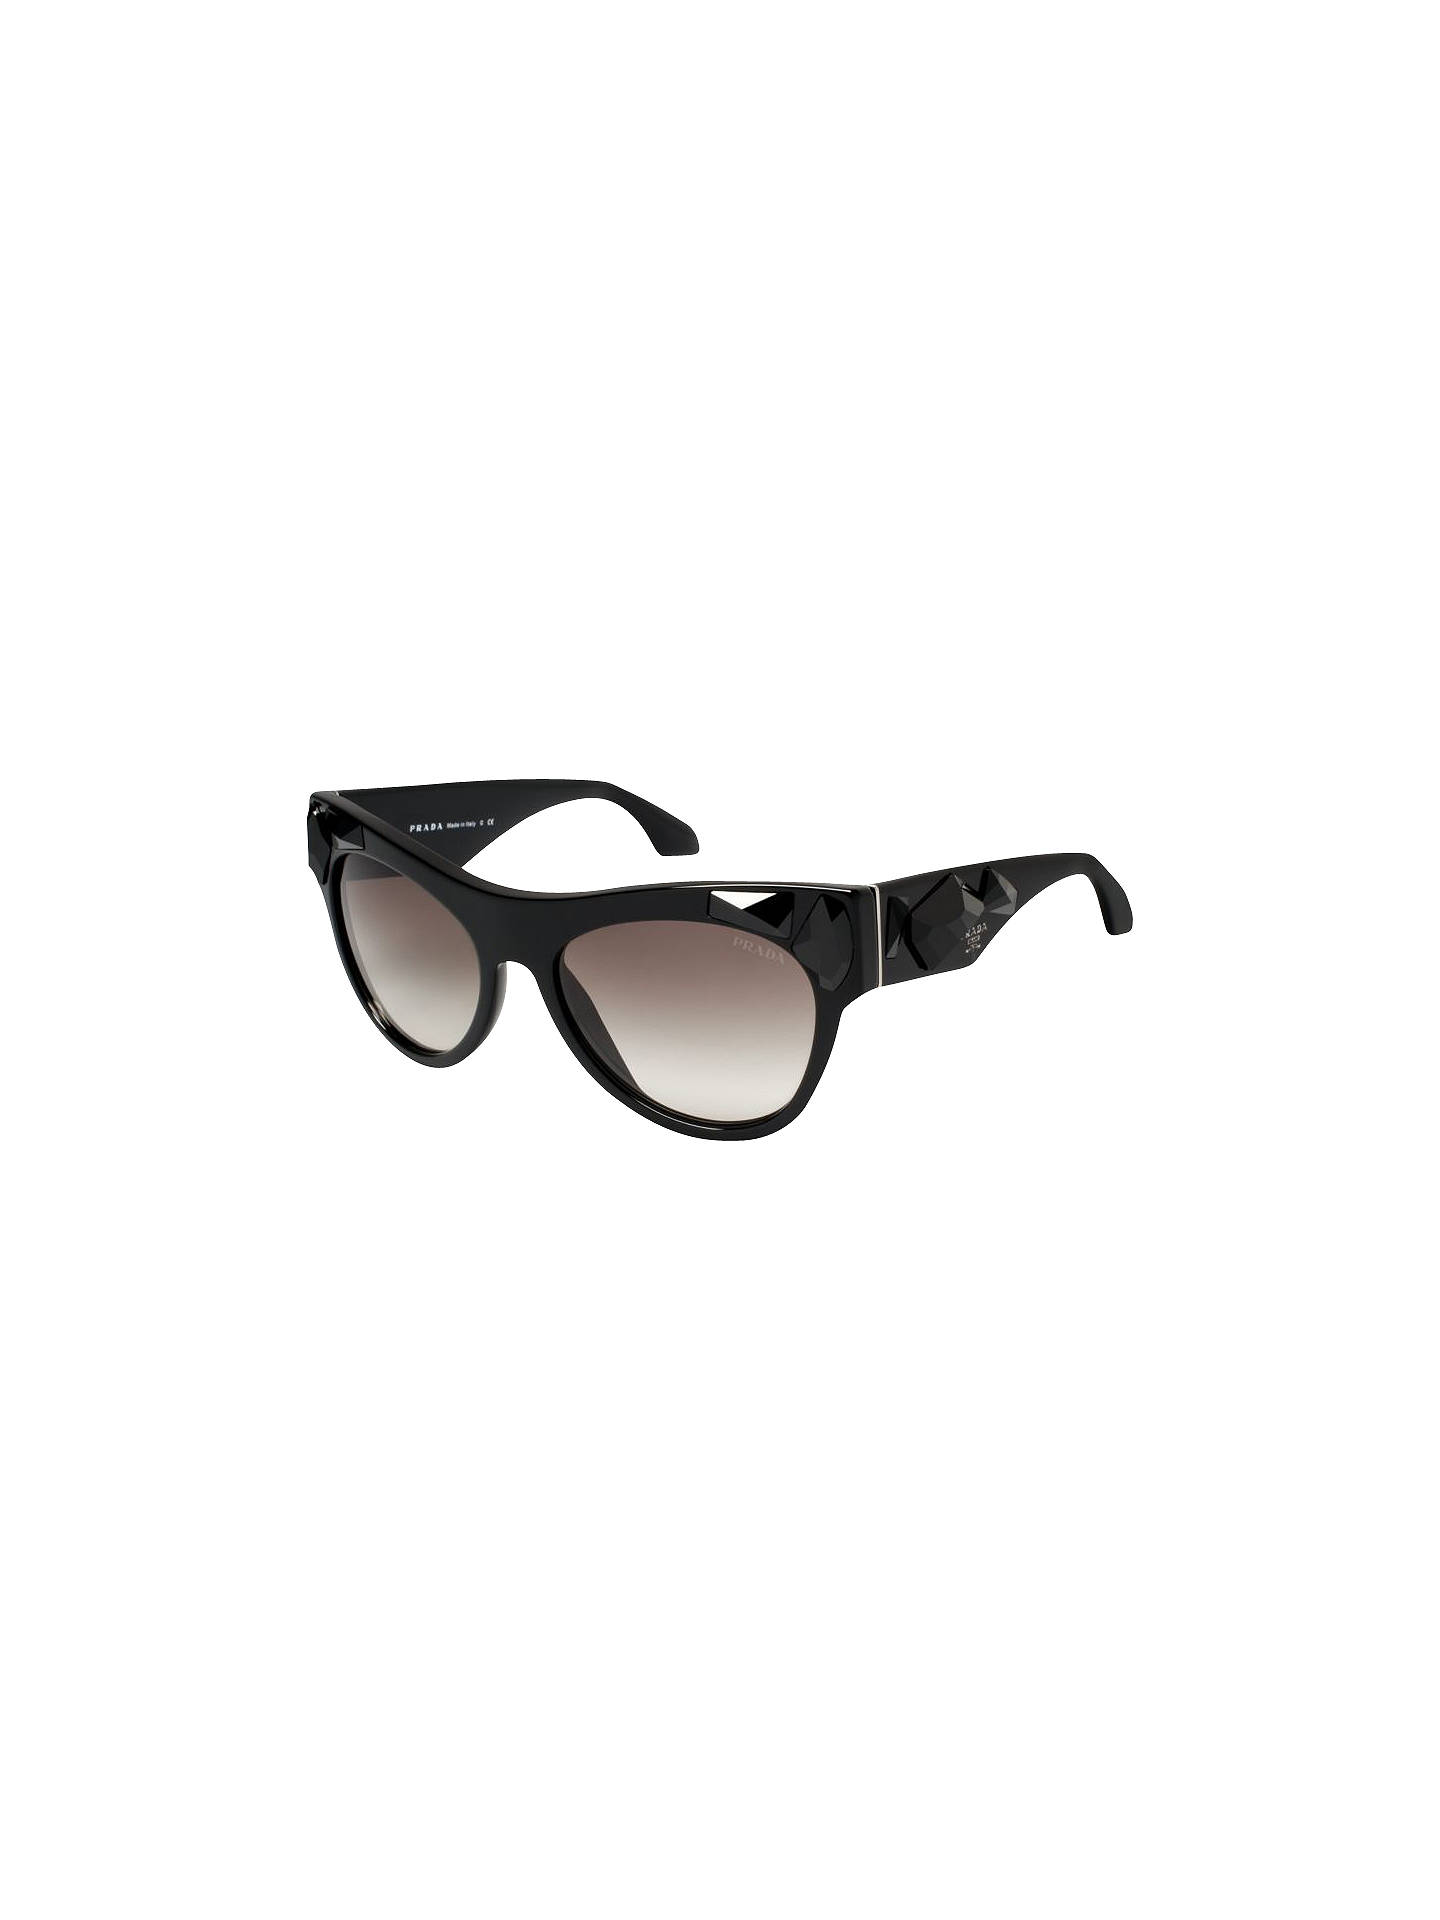 caf629d359de BuyPrada PR22QS Limited Edition Voice Sunglasses